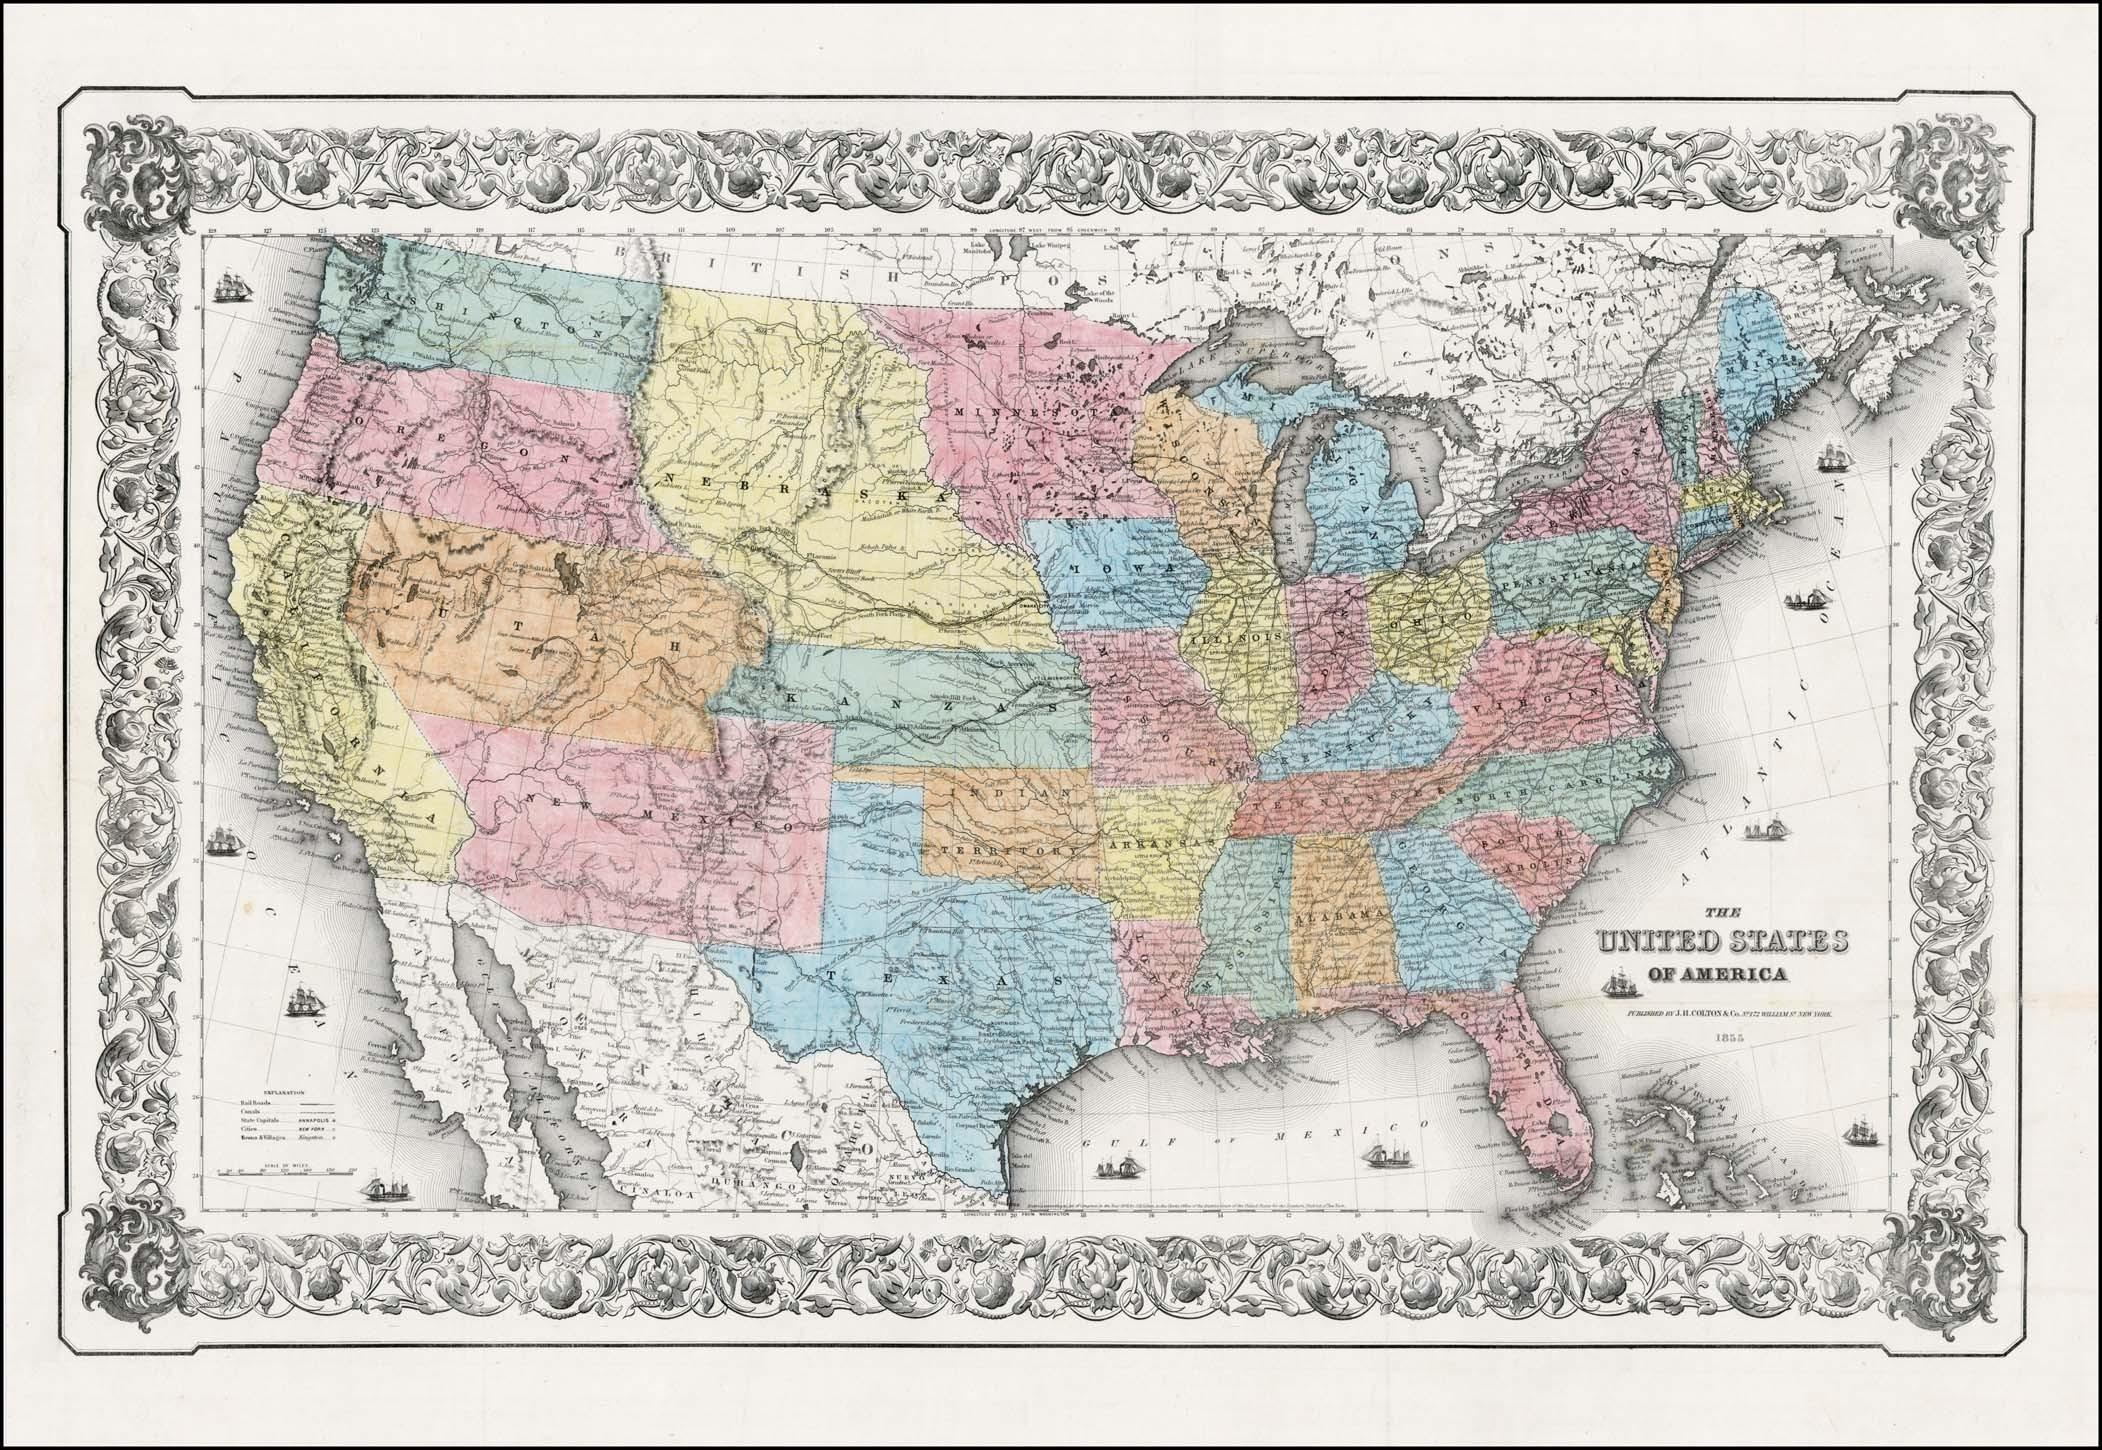 The United States of America. 1855 - Barry Lawrence Ruderman ... on